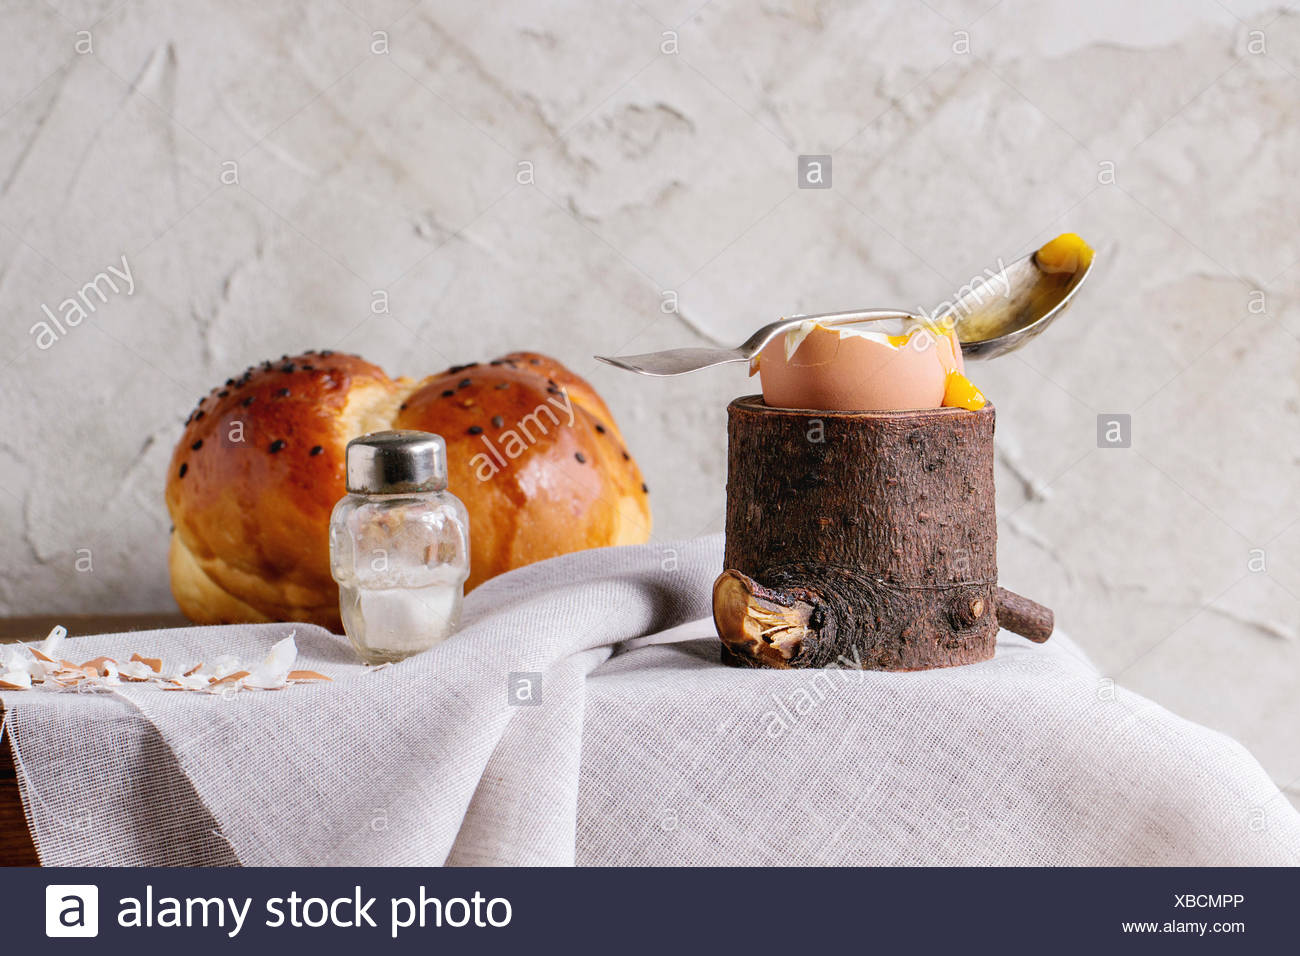 Breakfast with started eating soft-boiled egg with pouring yolk in wooden eggcup and home made bread served with salt and silver - Stock Image